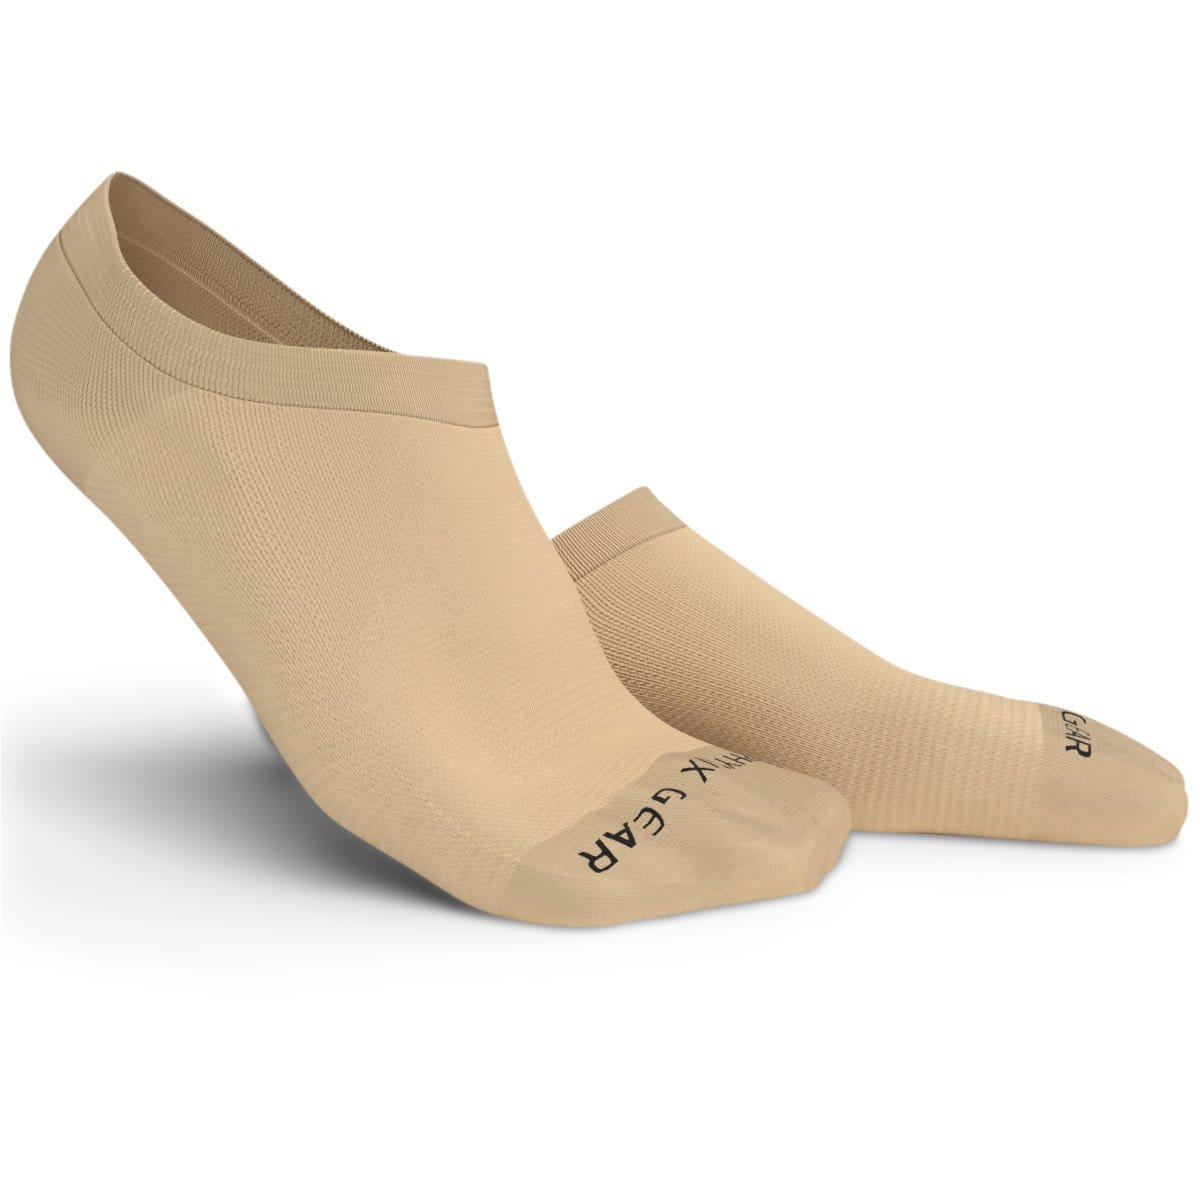 No Show Socks - Beige 3 Pairs (Ankle High)-Physix Gear Sport